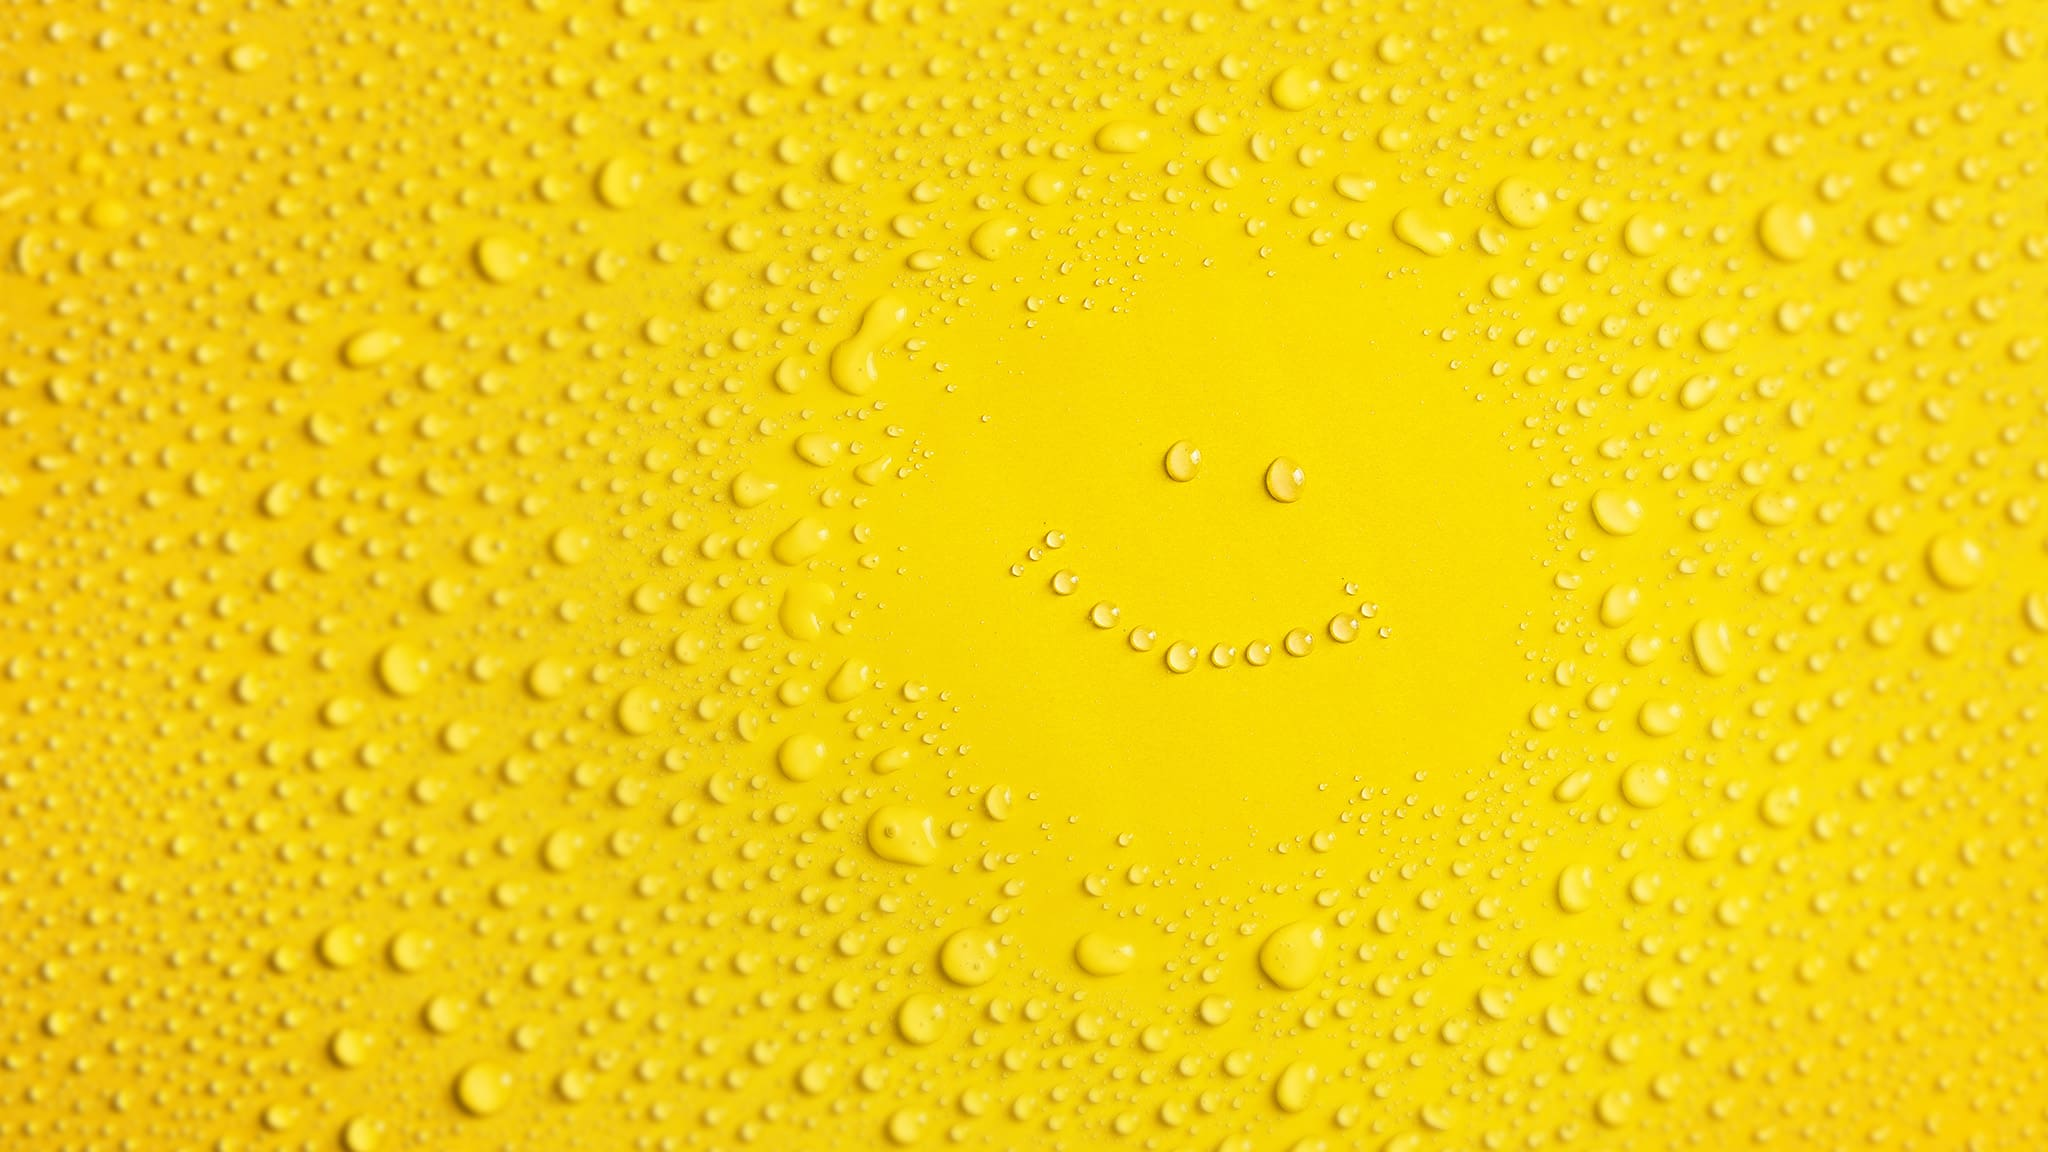 Yellow Background Covered In Water Droplets With A Smiley Face Of Droplets In The Center